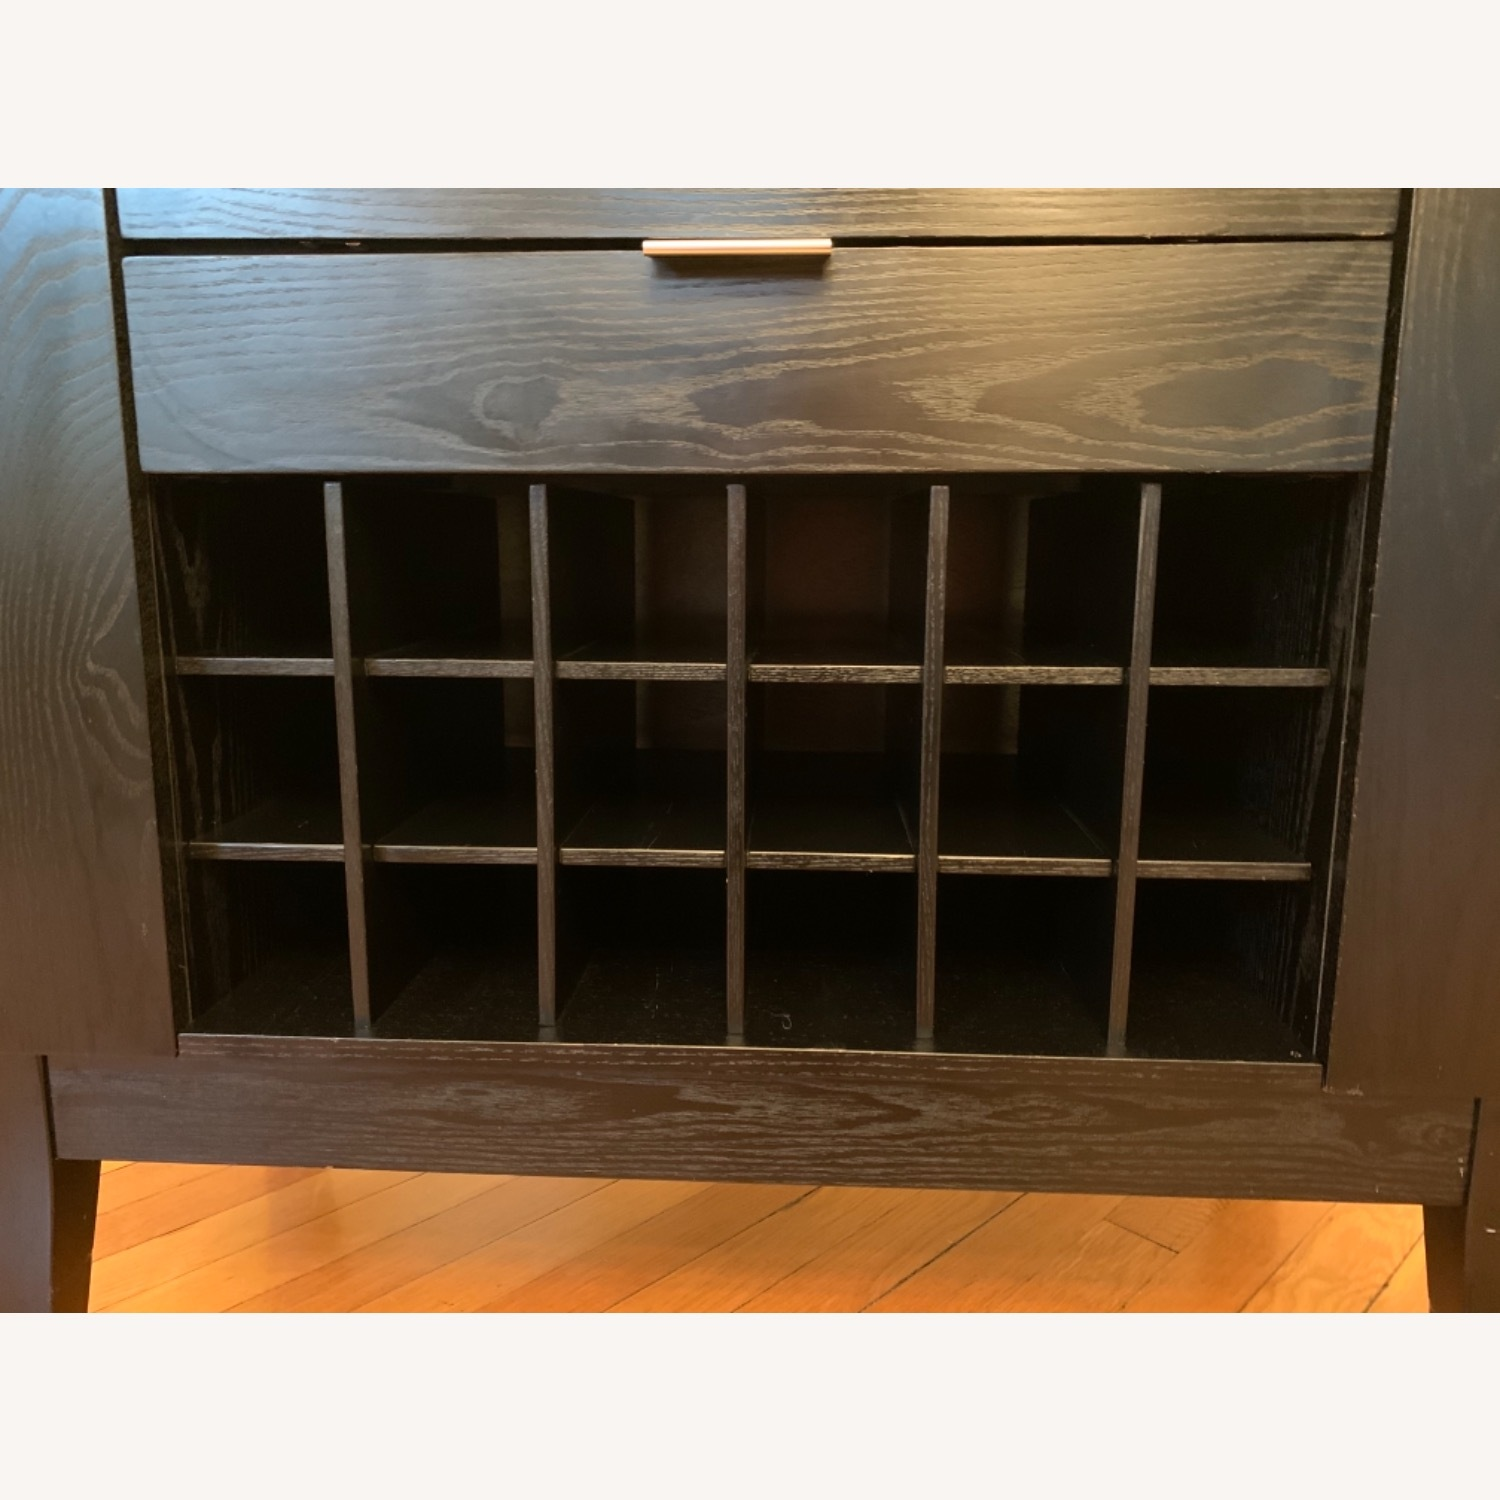 Crate & Barrel Bar & Spirits Cabinet - Espresso - image-5